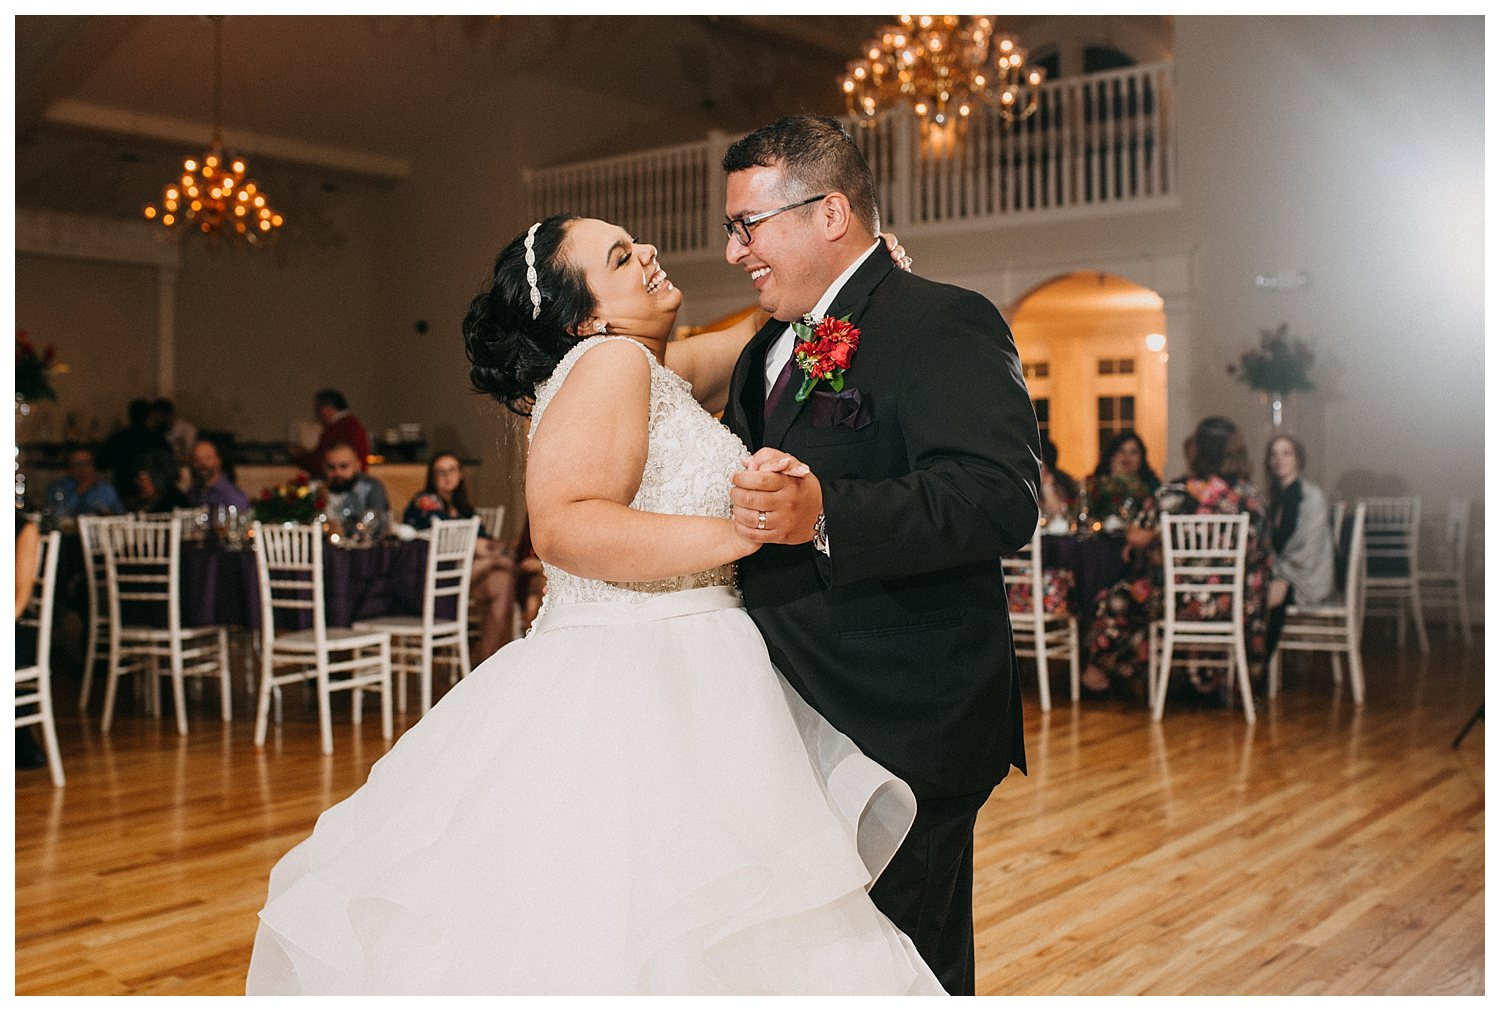 Kelsey_Diane_Photography_Hawthorne_House_Parkville_Kansas_City_Wedding_Veronica_Pat_0083.jpg